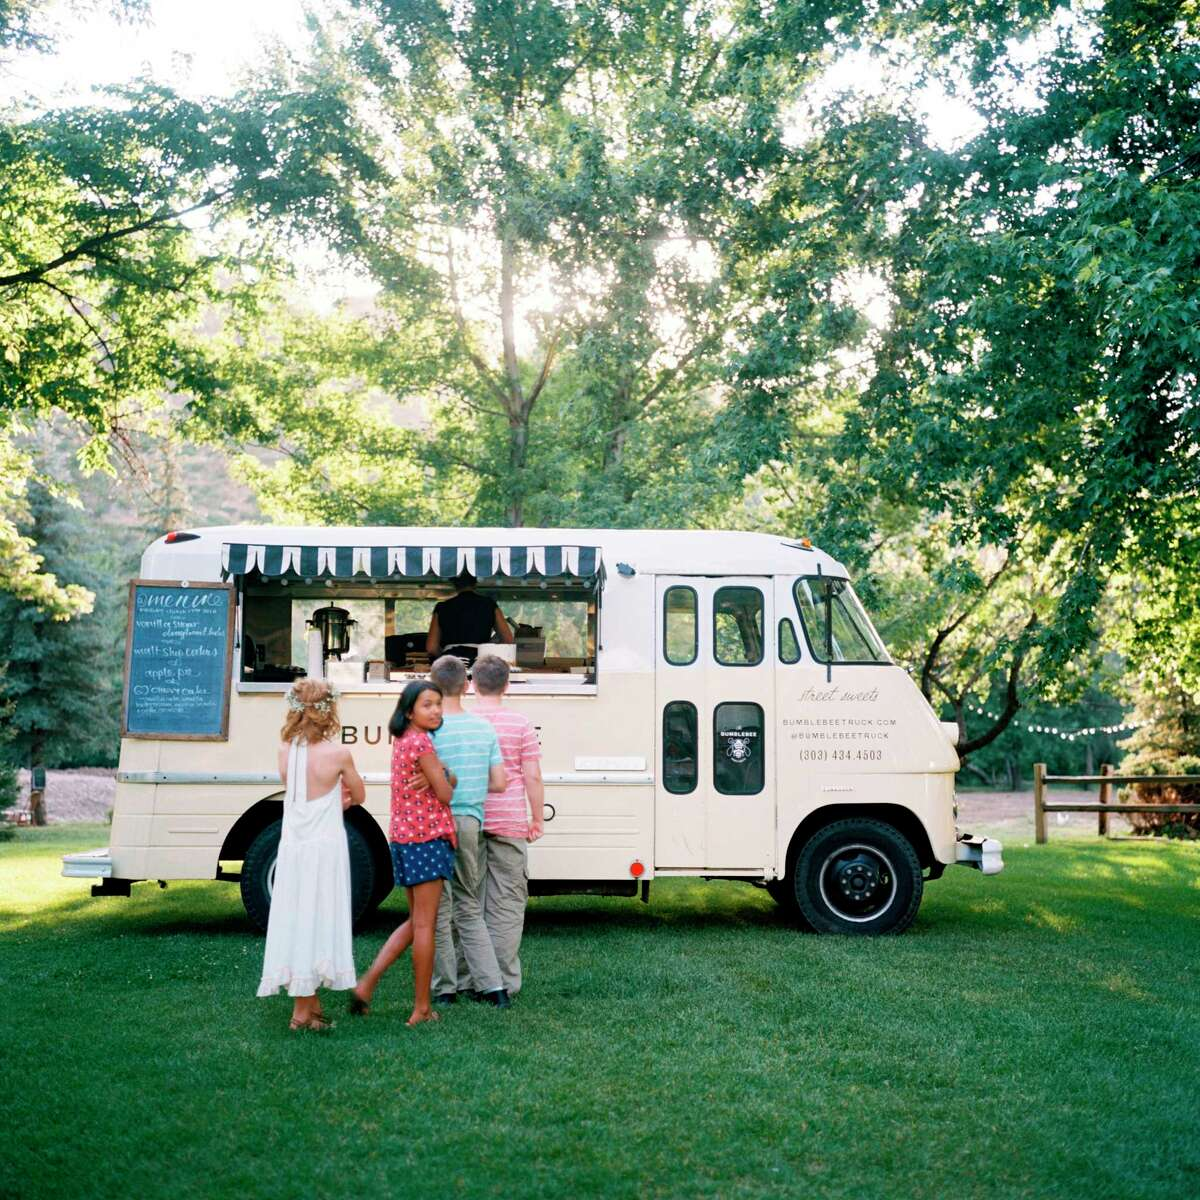 In this 2016 photo provided by Lucky Malone Photography, children line up for desserts from The Bumblebee truck at a wedding held at the Lyon's Farmette & River Bend in Lyons, Colo. The Bumblebee is a dessert truck owned and operated by Denver-based chef Lora Kleinwachter. (Danielle DeFiore/Lucky Malone Photography via AP) ORG XMIT: NYLS310